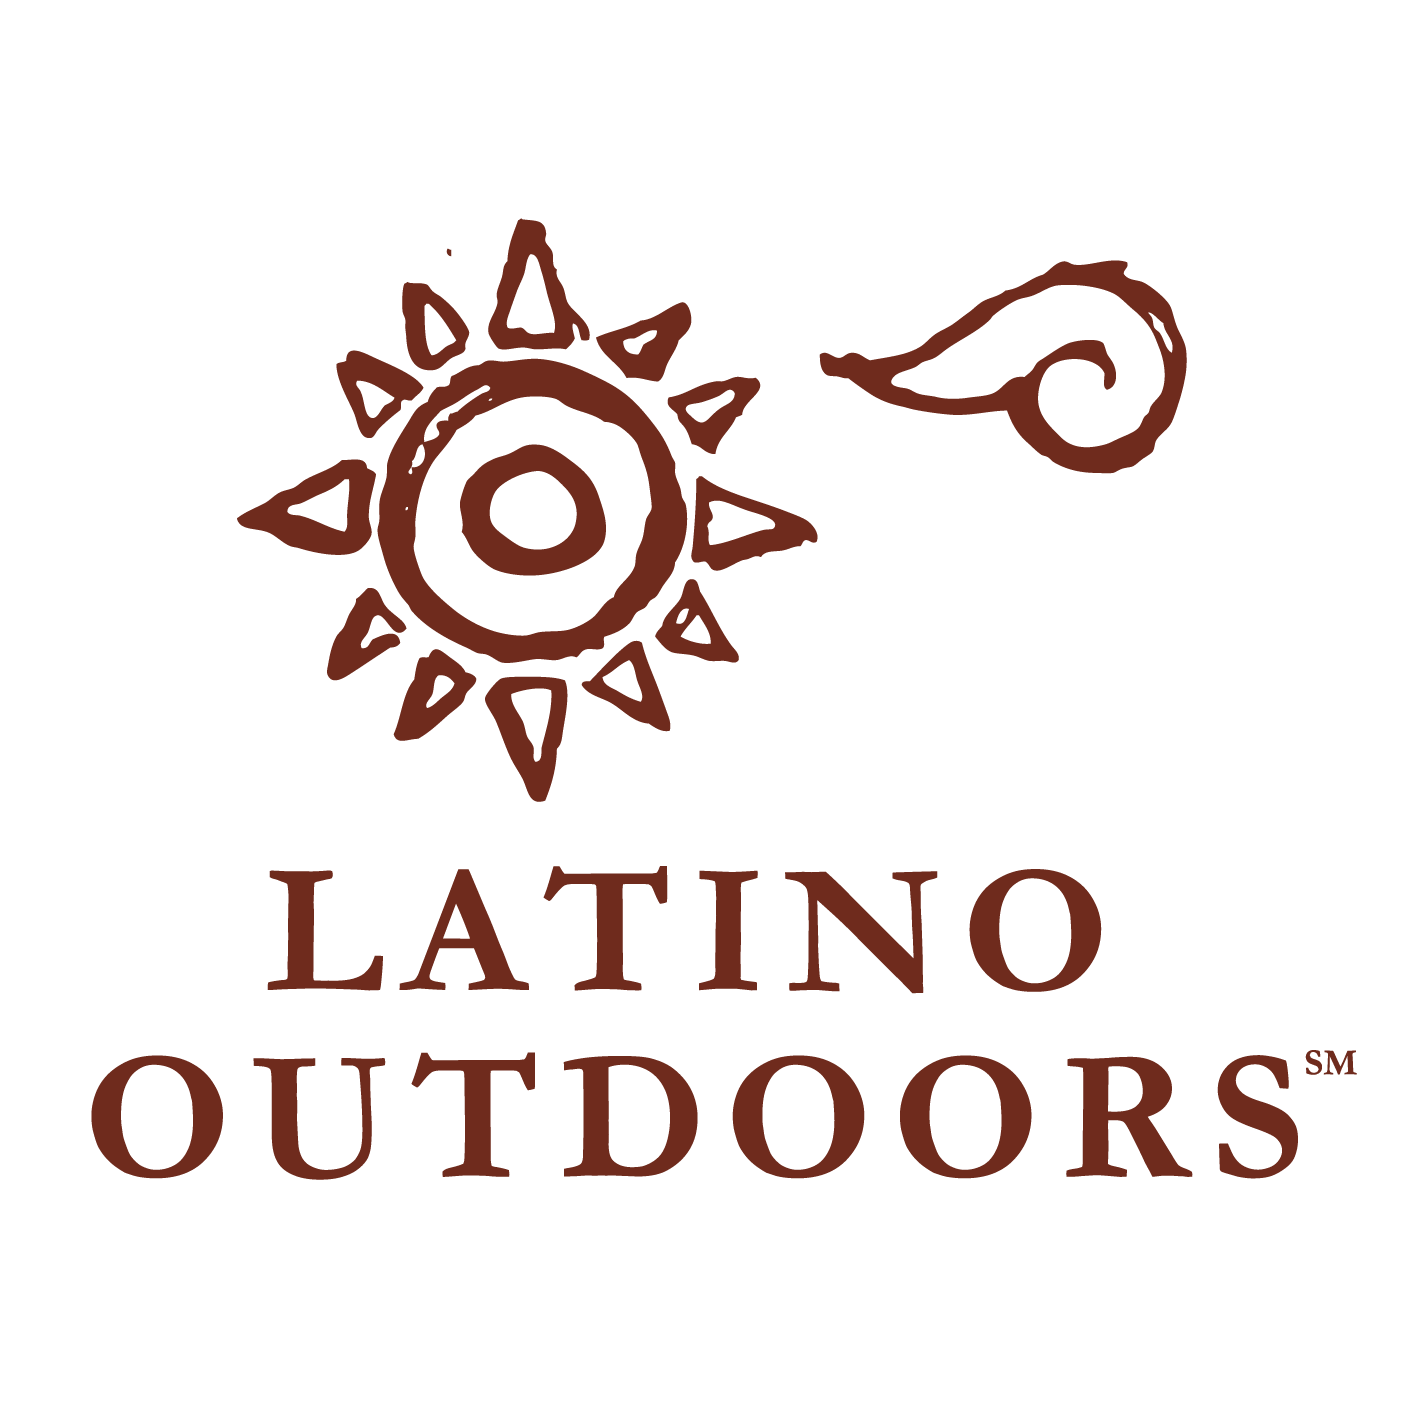 Latino Outdoors logo